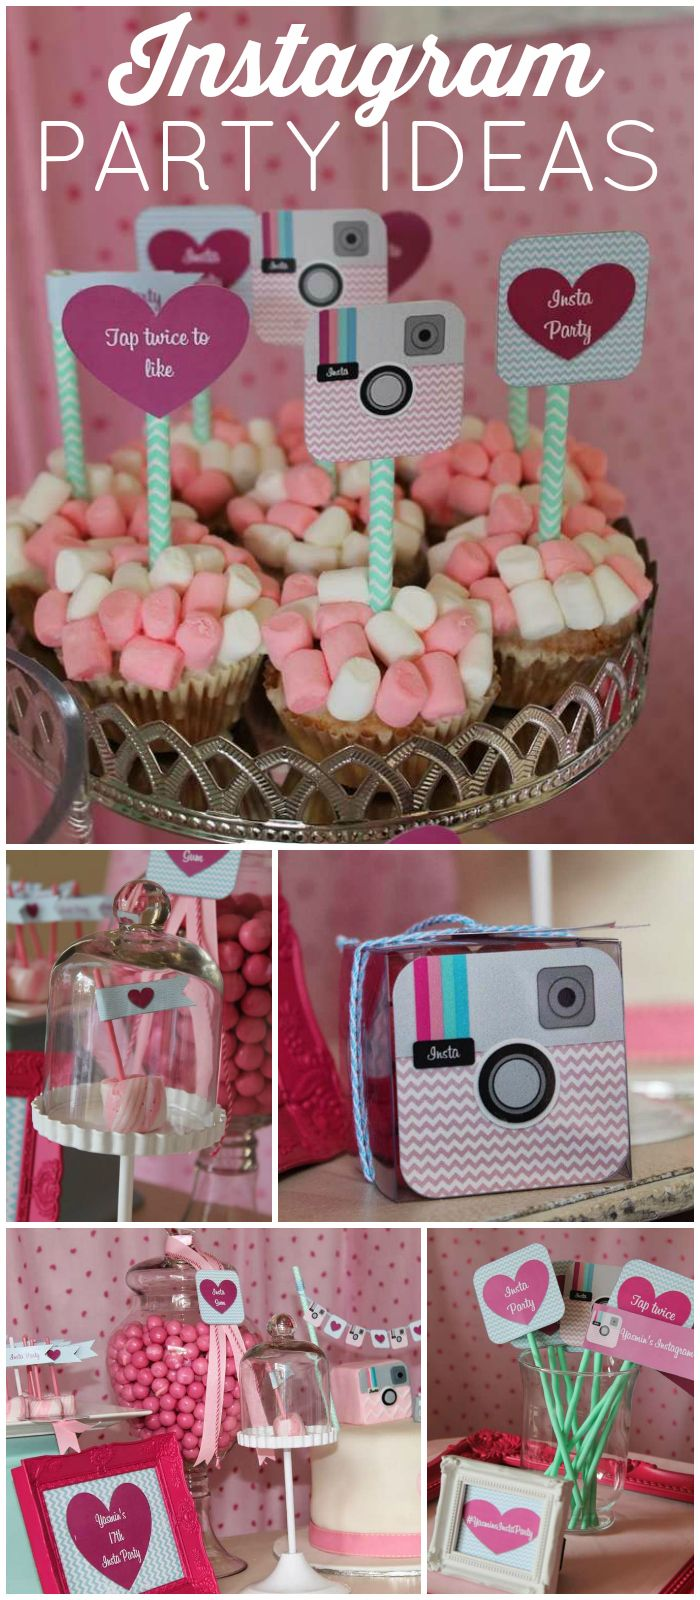 Instagram Social Media Birthday InstaParty Girly Birthdays